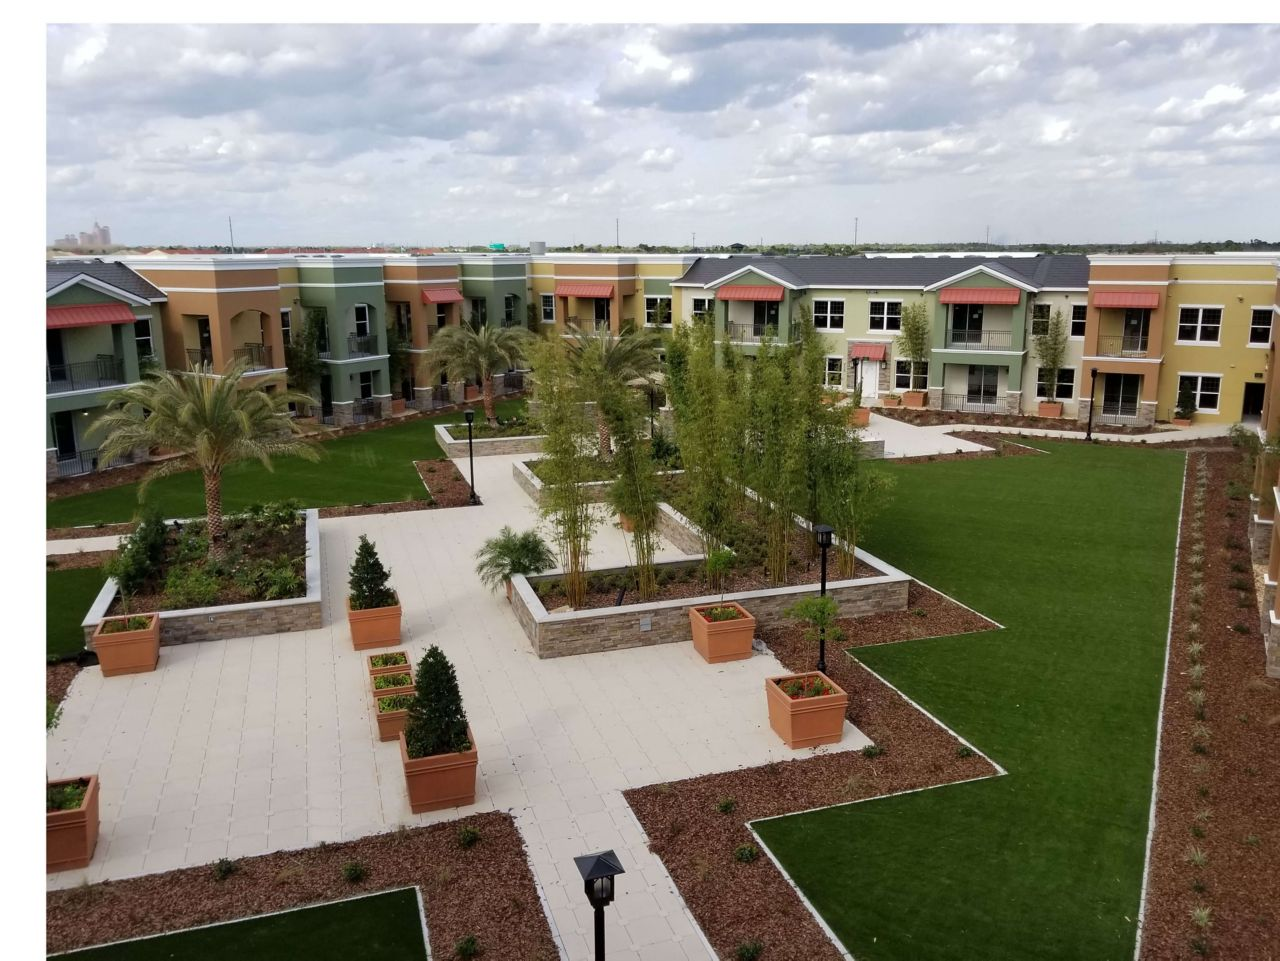 Urbana at Hunter's Creek apartment complex after finished construction